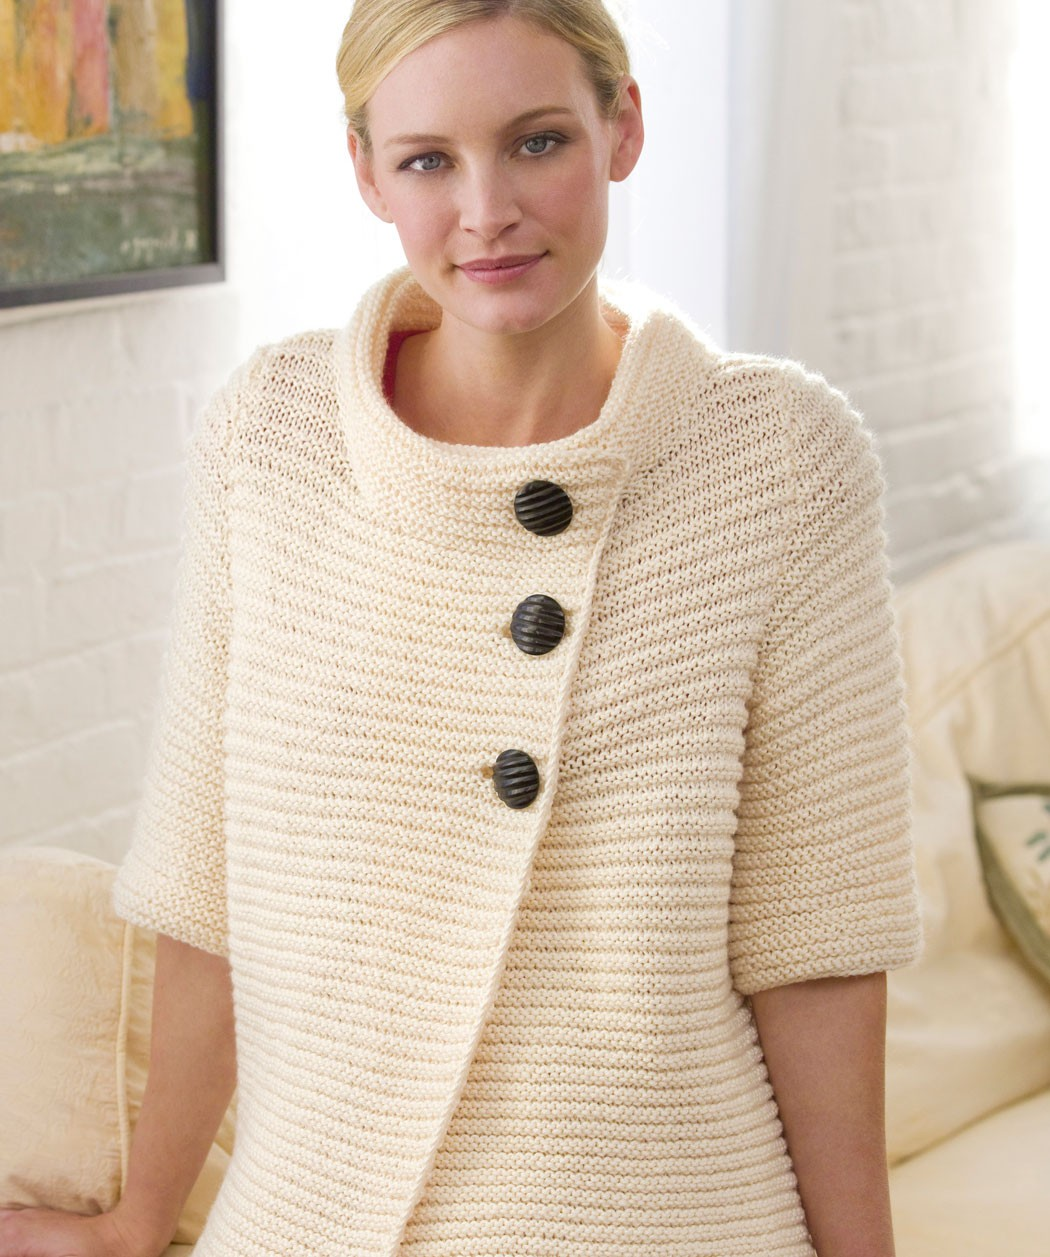 Easy Knitting Pattern For Sweater : Knitted Sweater Patterns for Women A Knitting Blog